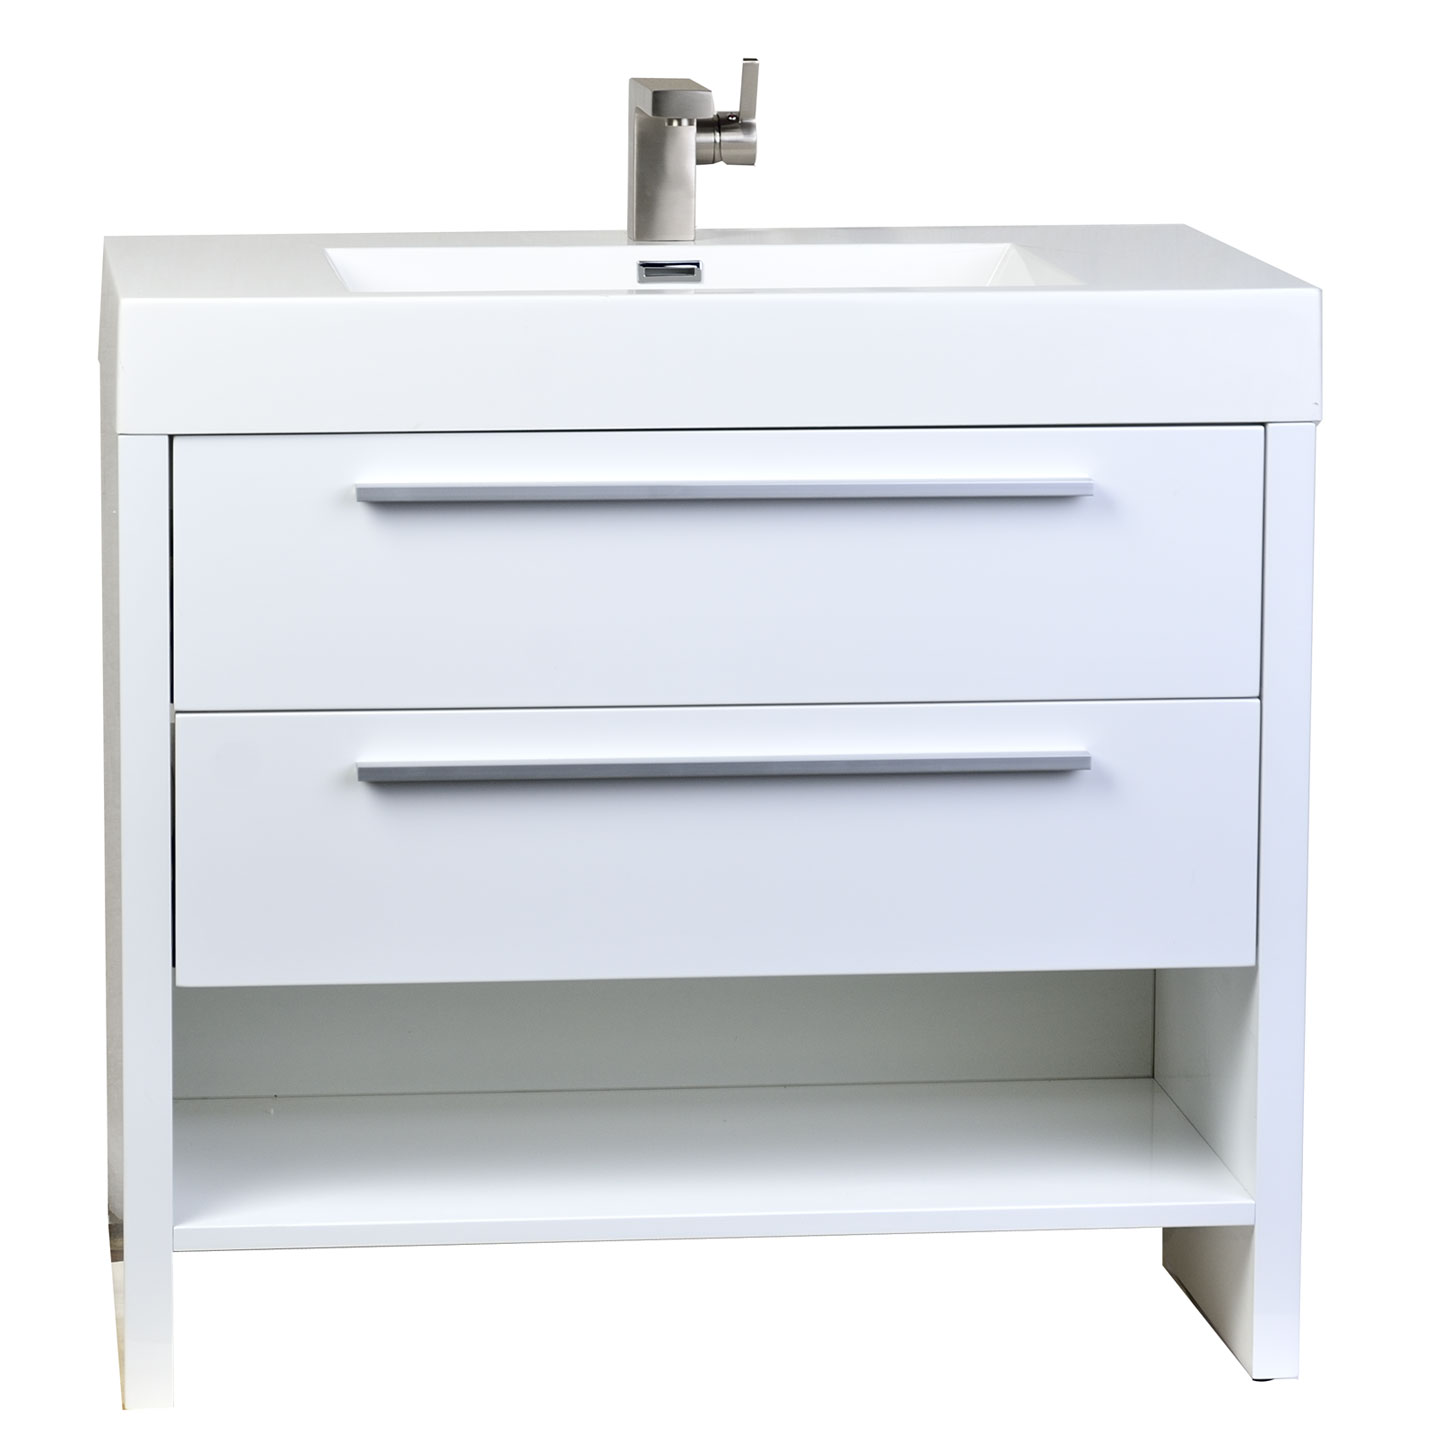 Gloss white bathroom cabinet - Bathroom cabinets black gloss ...